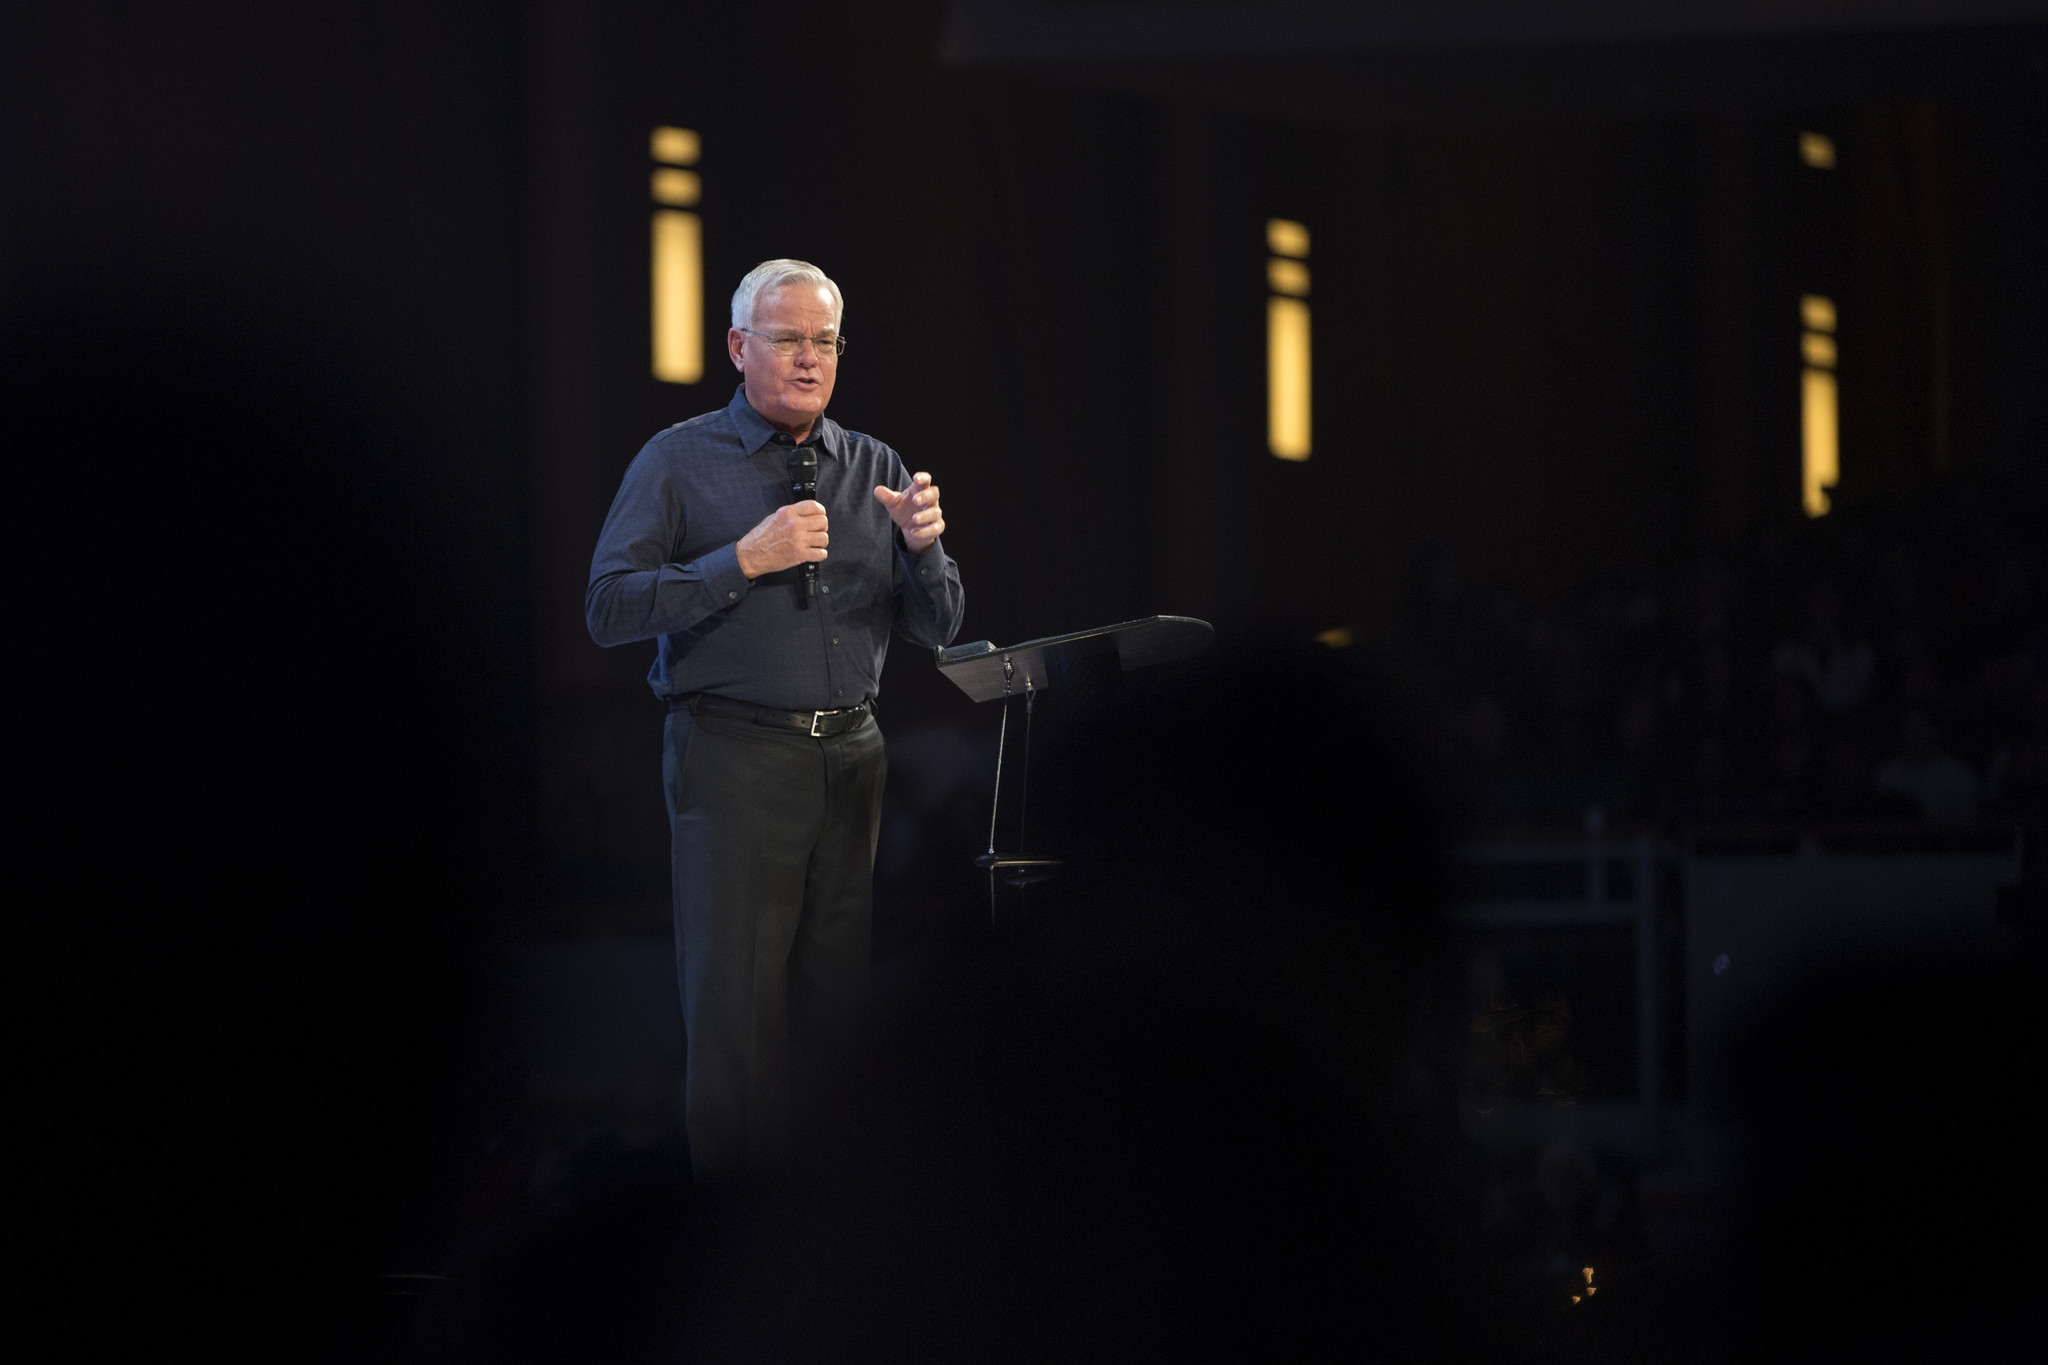 After years of inquiries, Willow Creek pastor denies misconduct